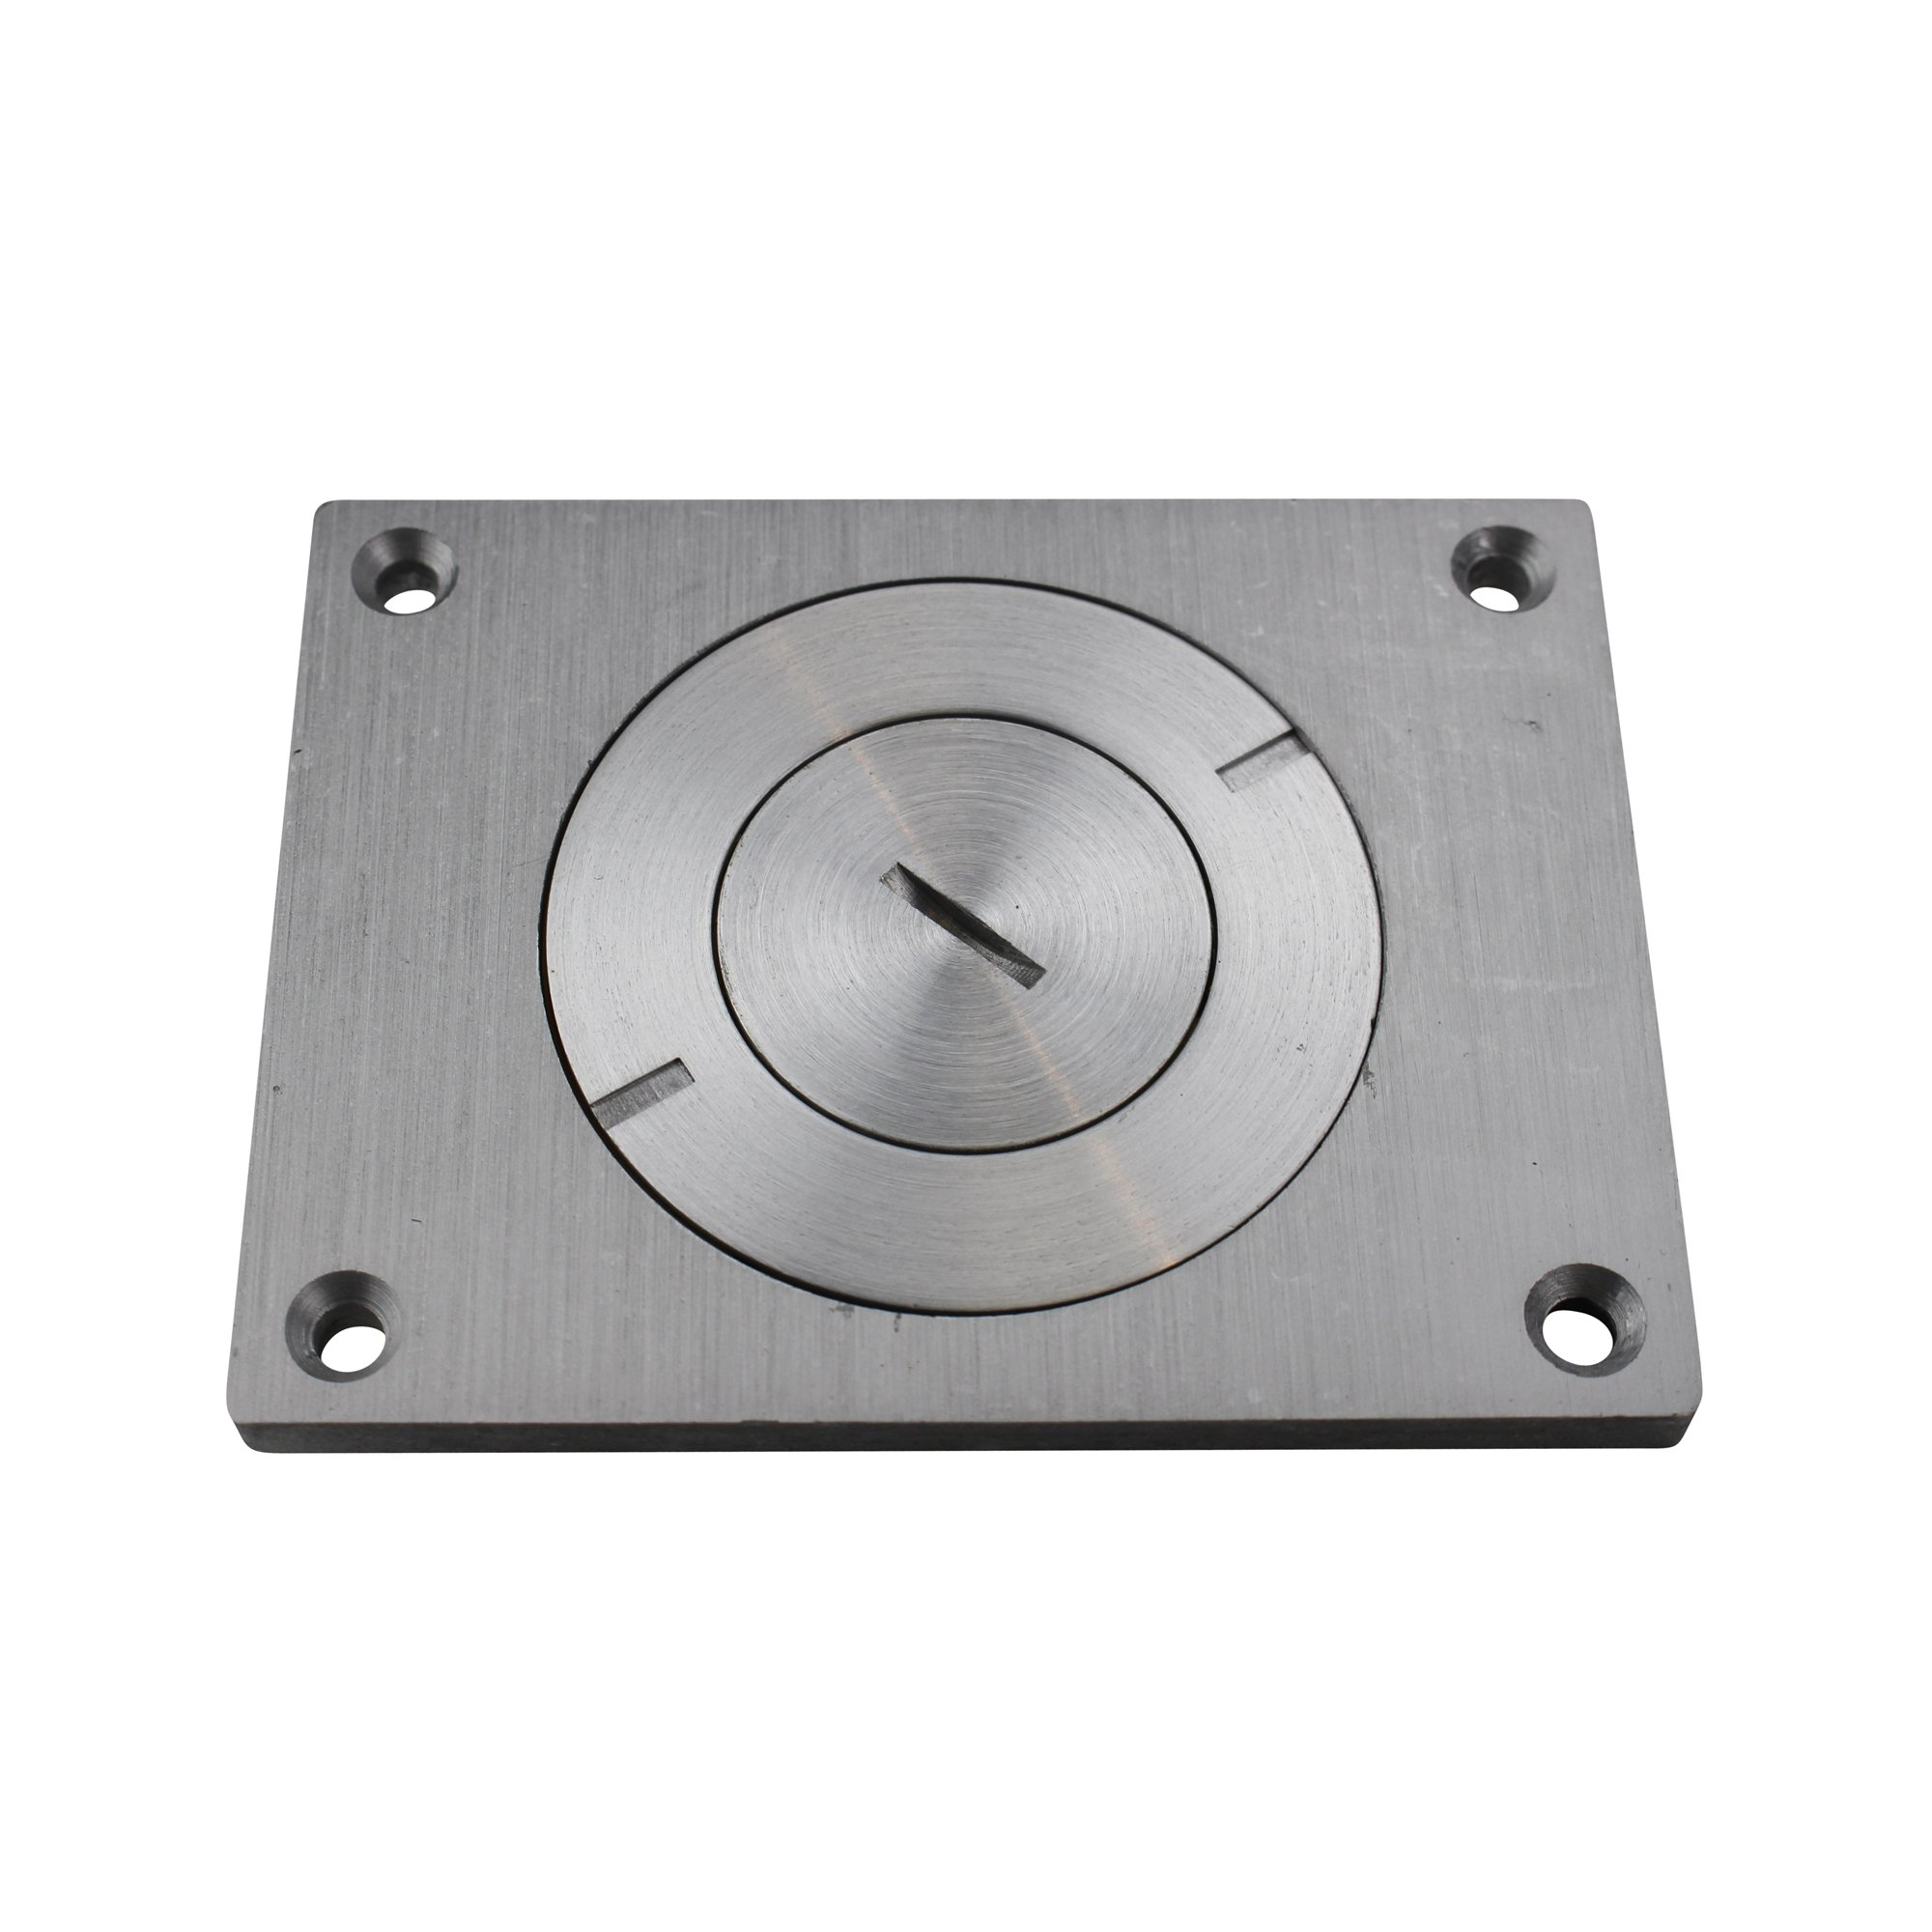 Wiremold 830CKTCAL-1 Aluminum 1-Gang Rectangular Communication Cover Plate 4-5/16 Inch x 3-1/4 Inch Brushed Aluminum